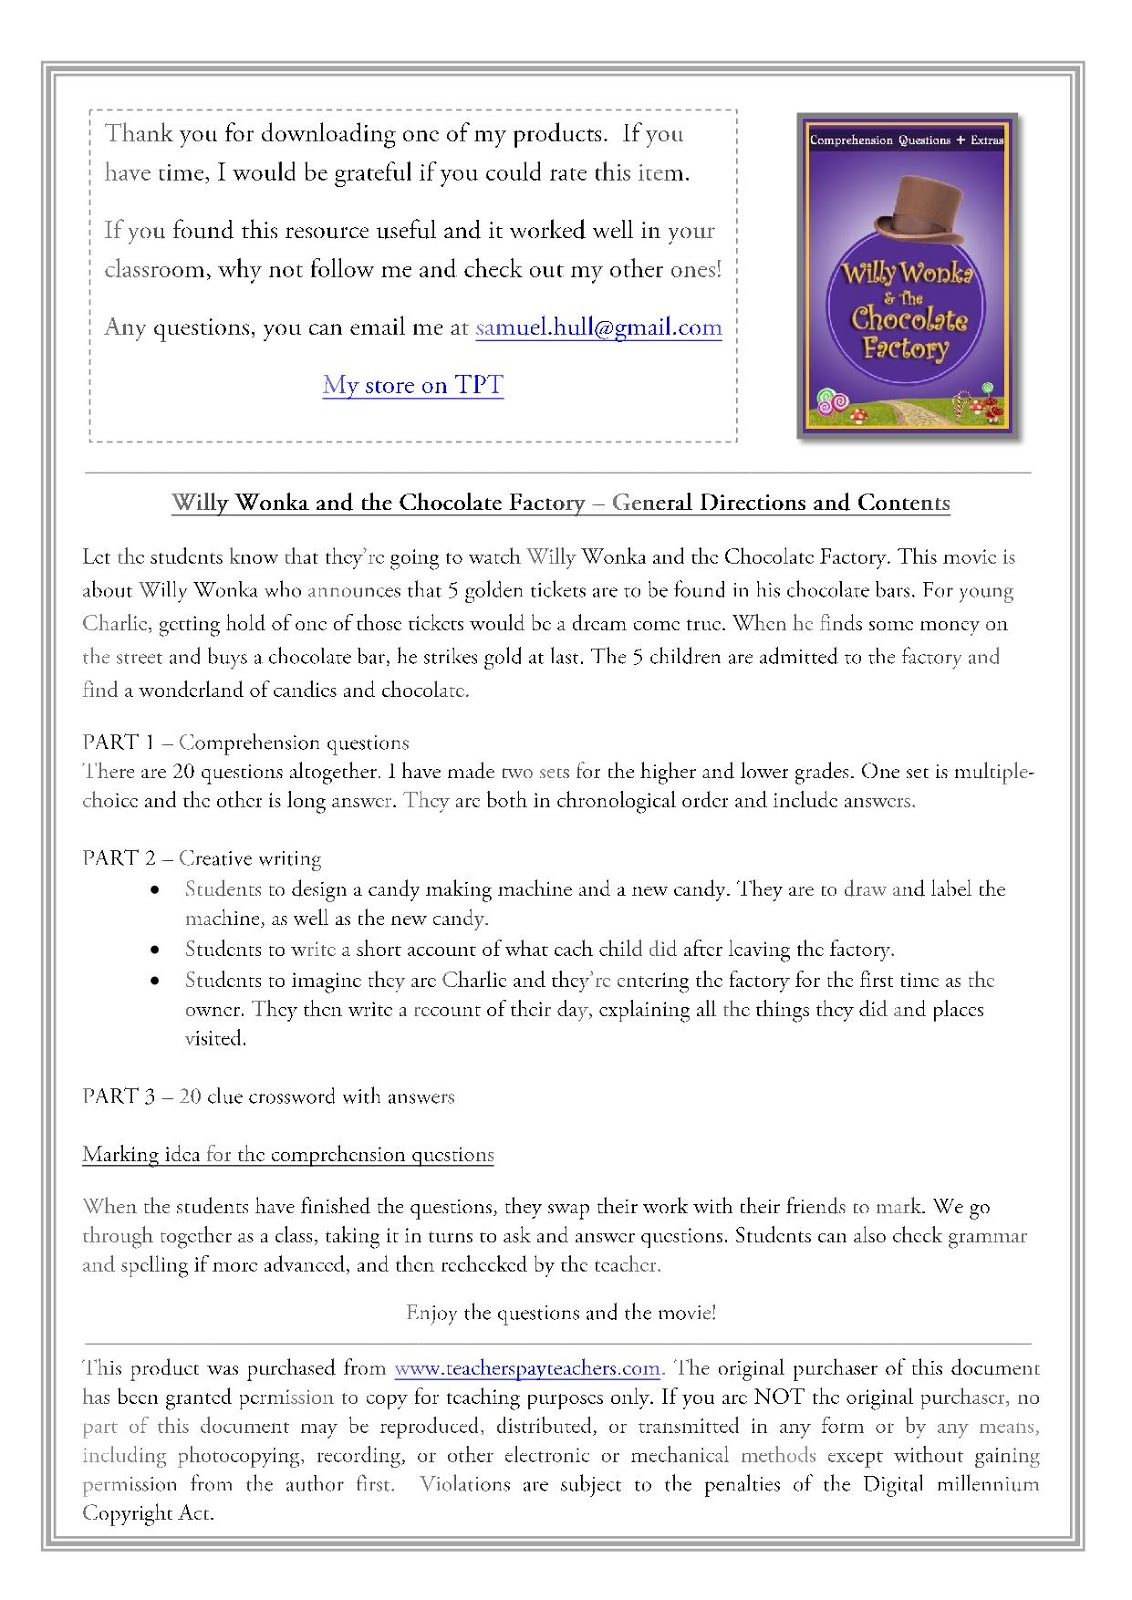 Willy Wonka And The Chocolate Factory Movie Guide